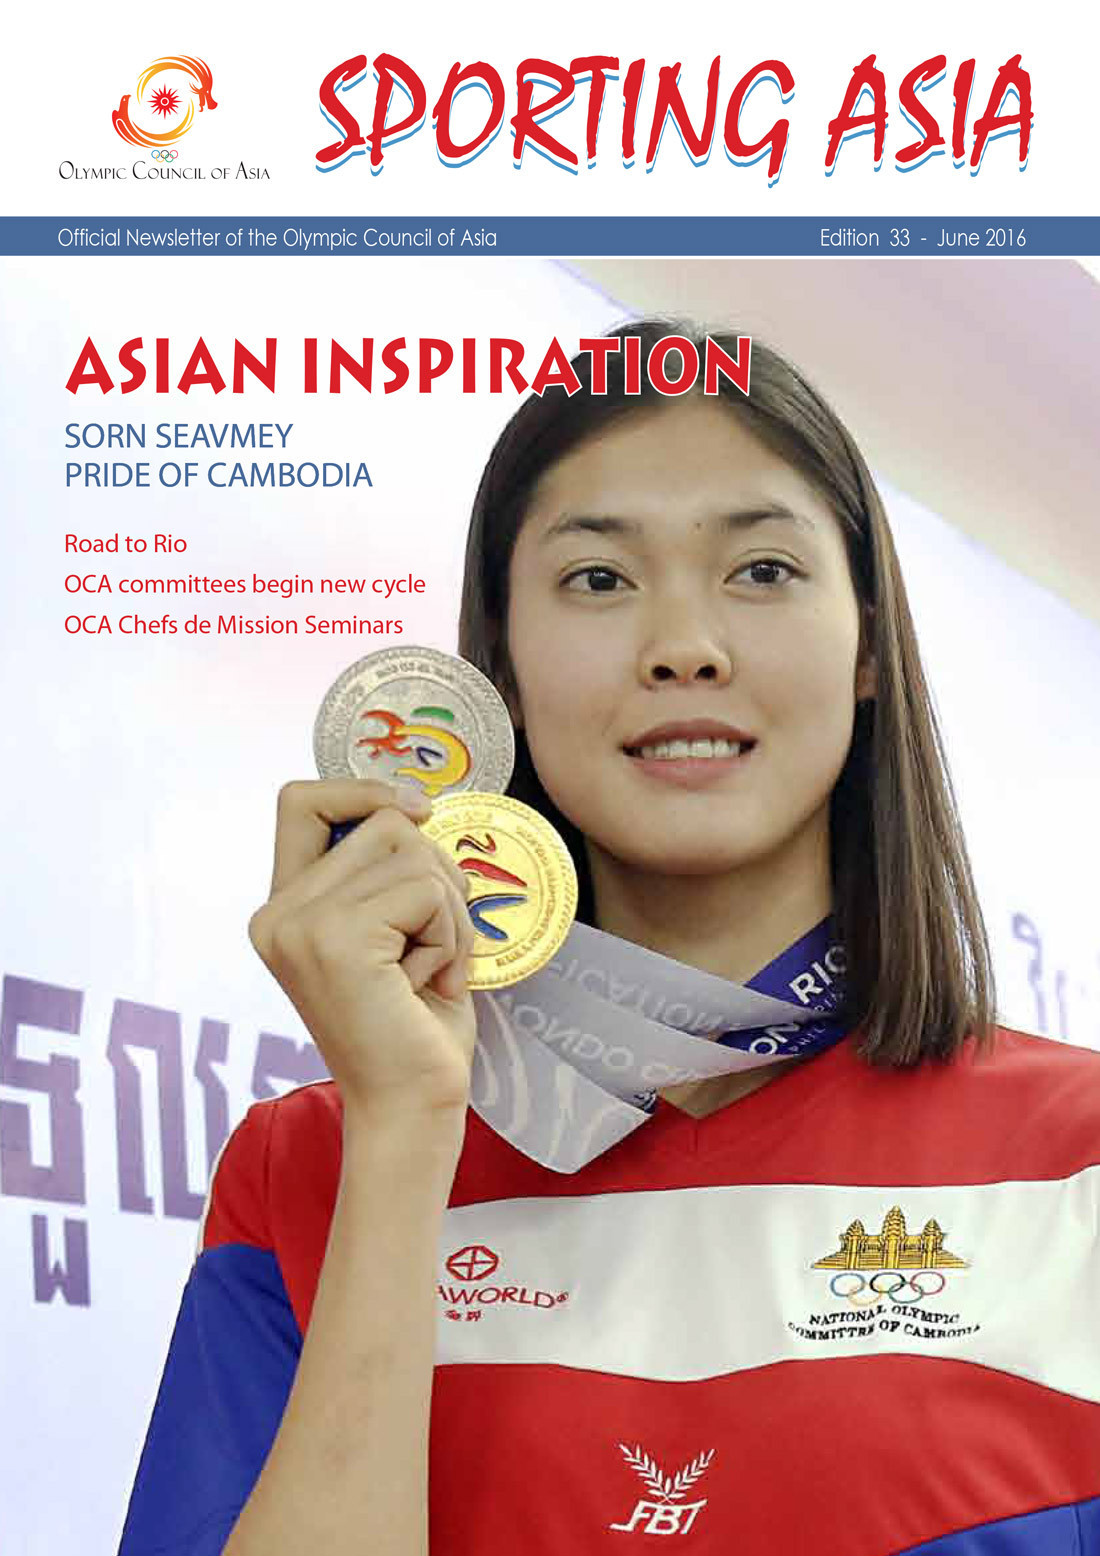 Sporting Asia - Edition 33 - JUN 2016